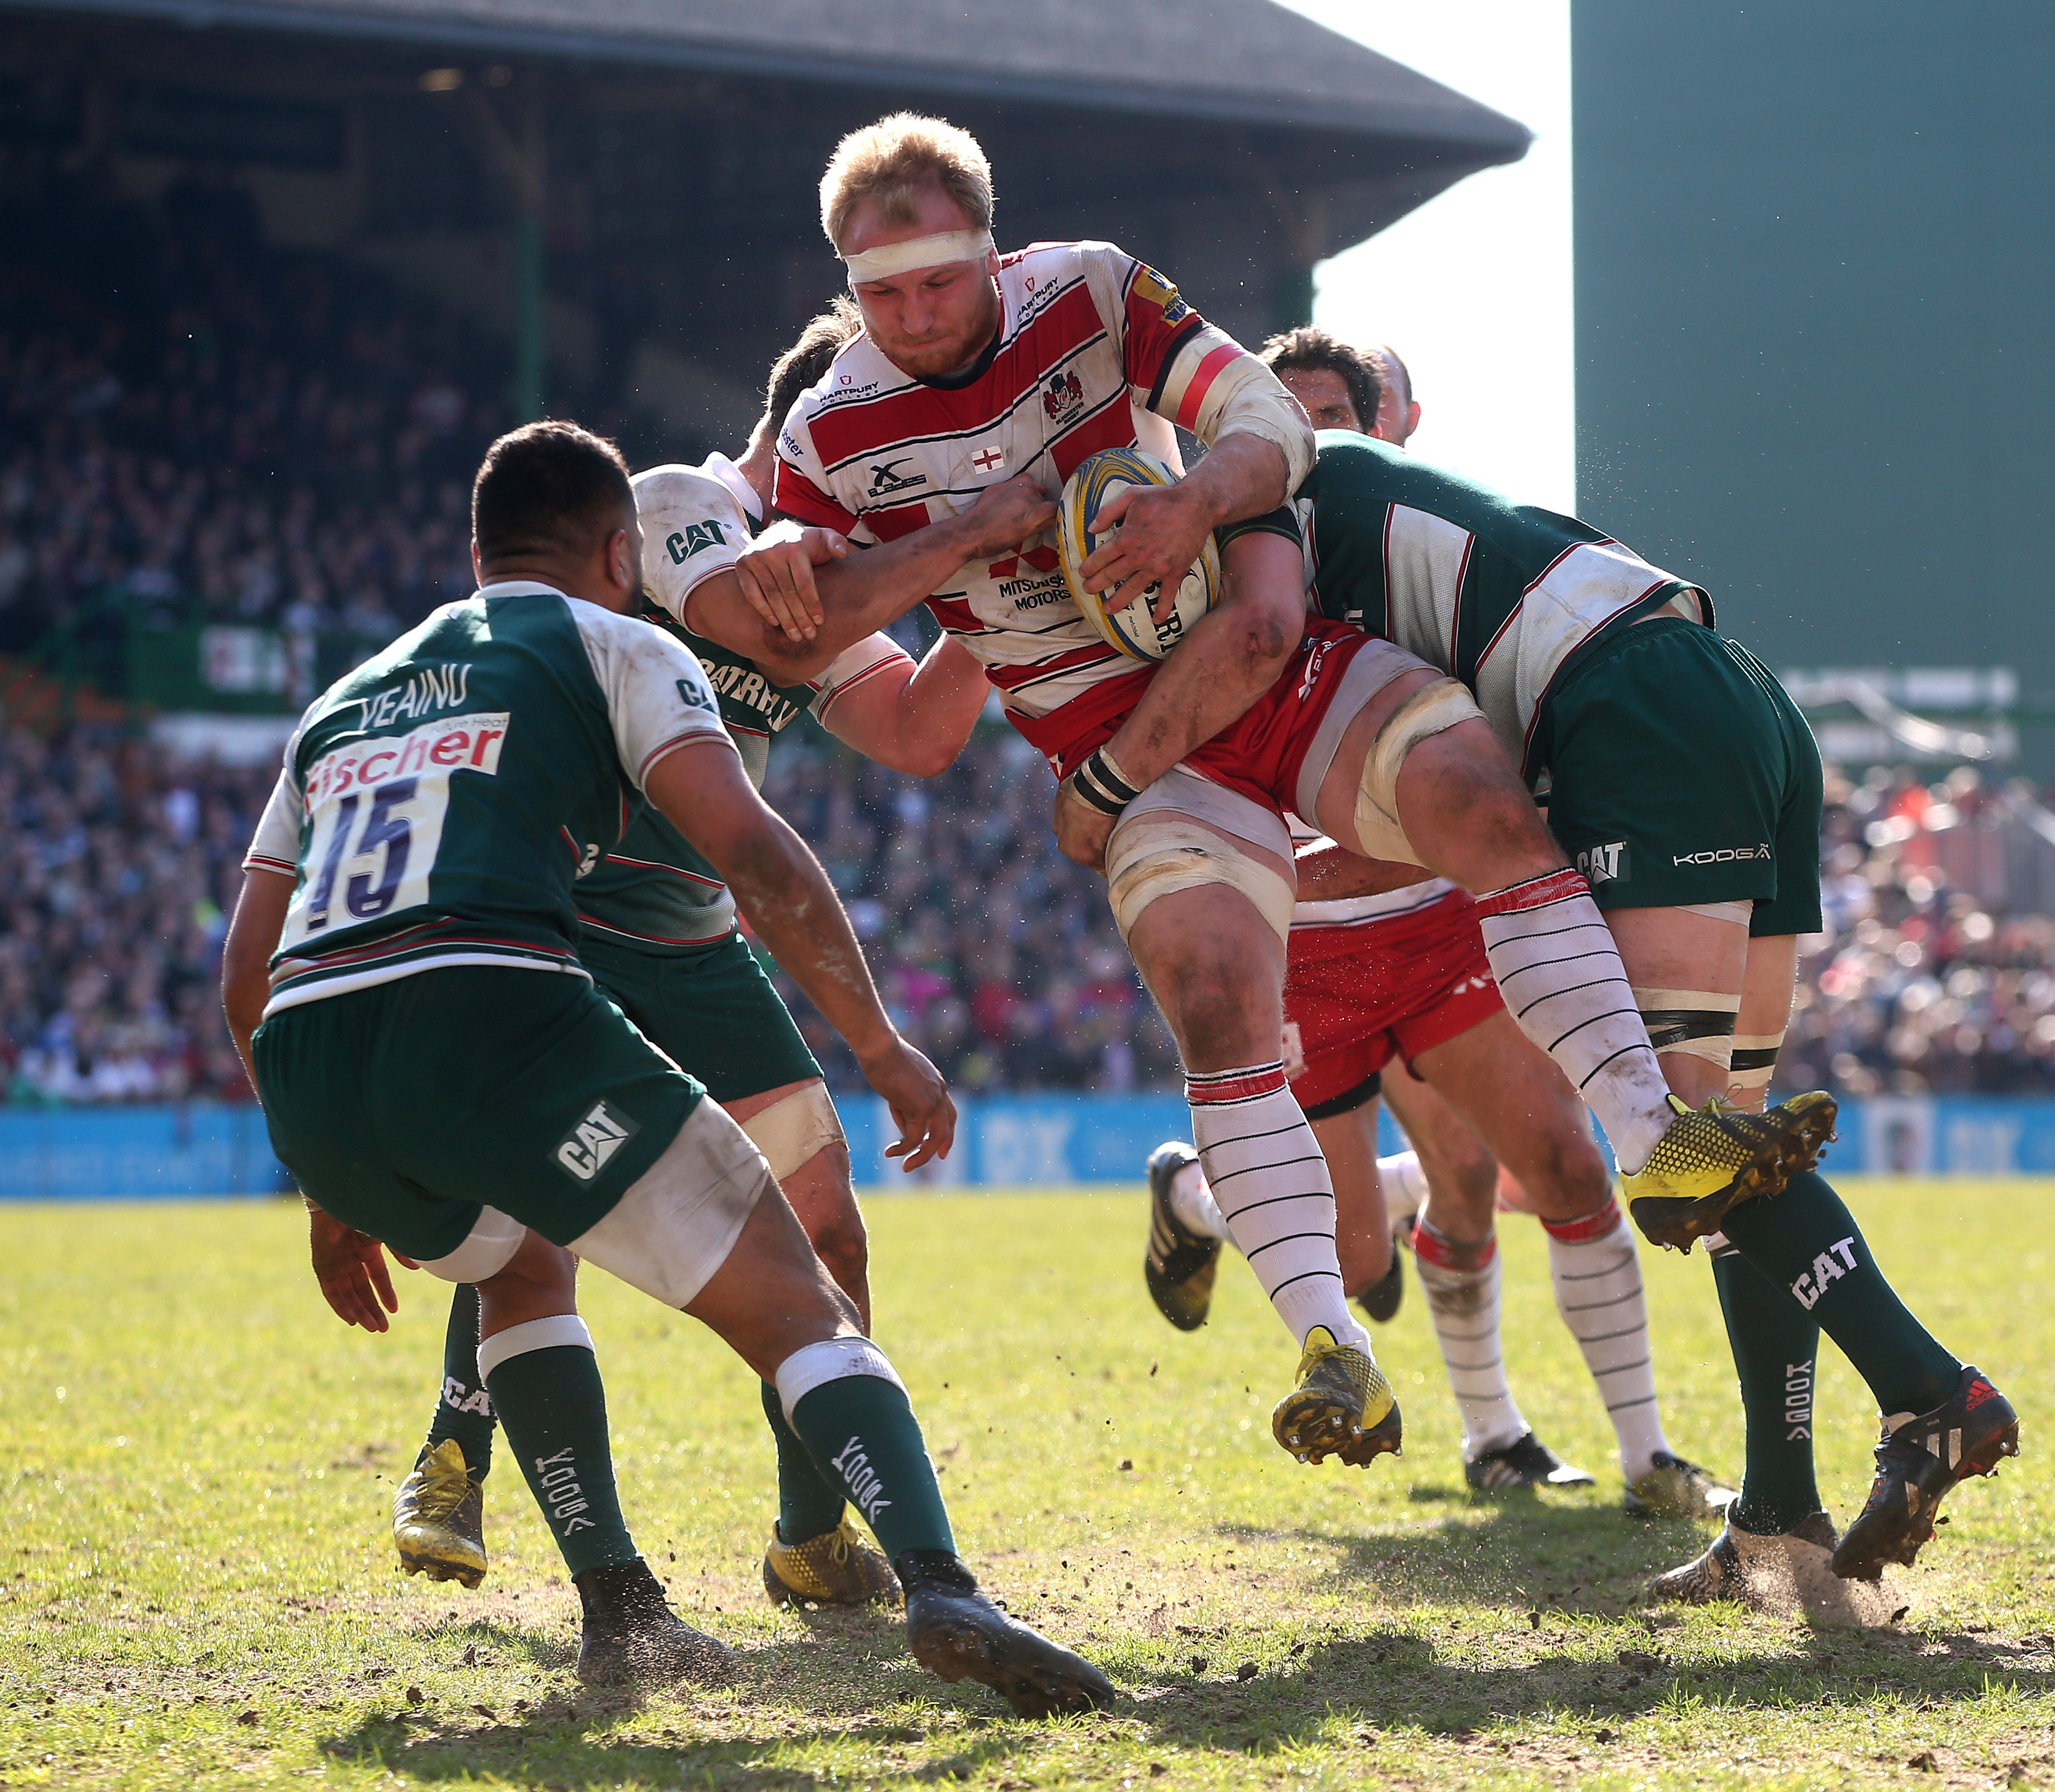 LEICESTER, ENGLAND - APRIL 02: Matt Kvesic of Gloucester is tackled during the Aviva Premiership match between Leicester Tigers and Gloucester at Welford Road on April 2, 2016 in Leicester, England. (Photo by David Rogers/Getty Images)